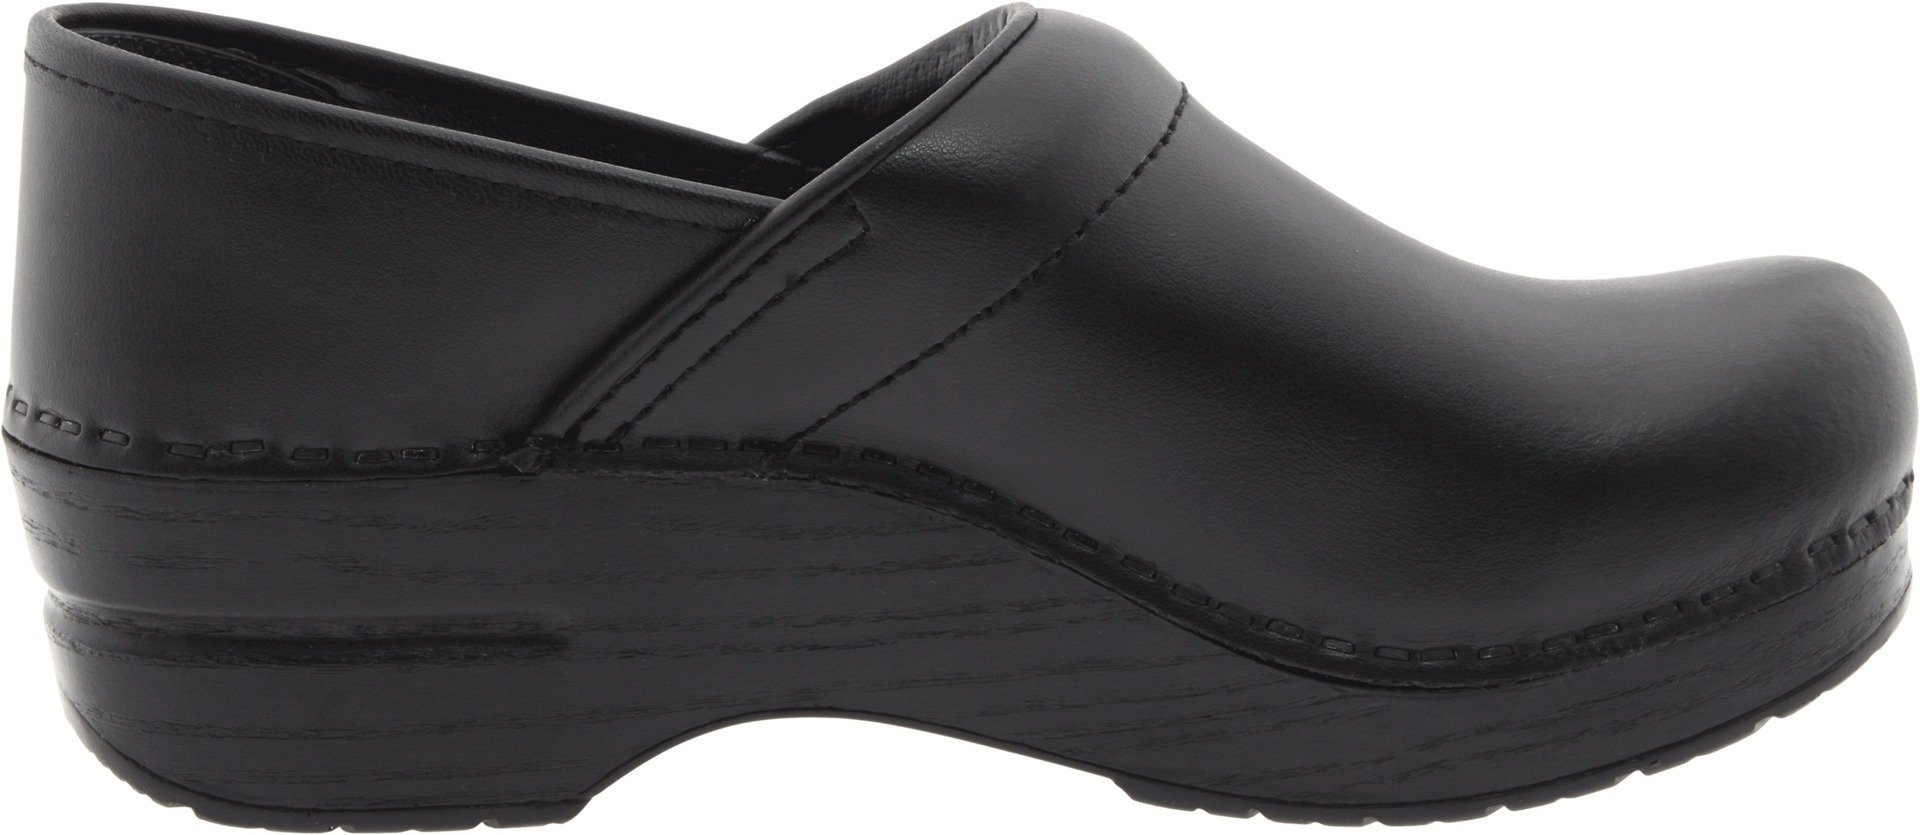 Dansko Women's Wide Professional Clog,Black Box,38 W EU / 7.5-8 D(W) US by Dansko (Image #6)